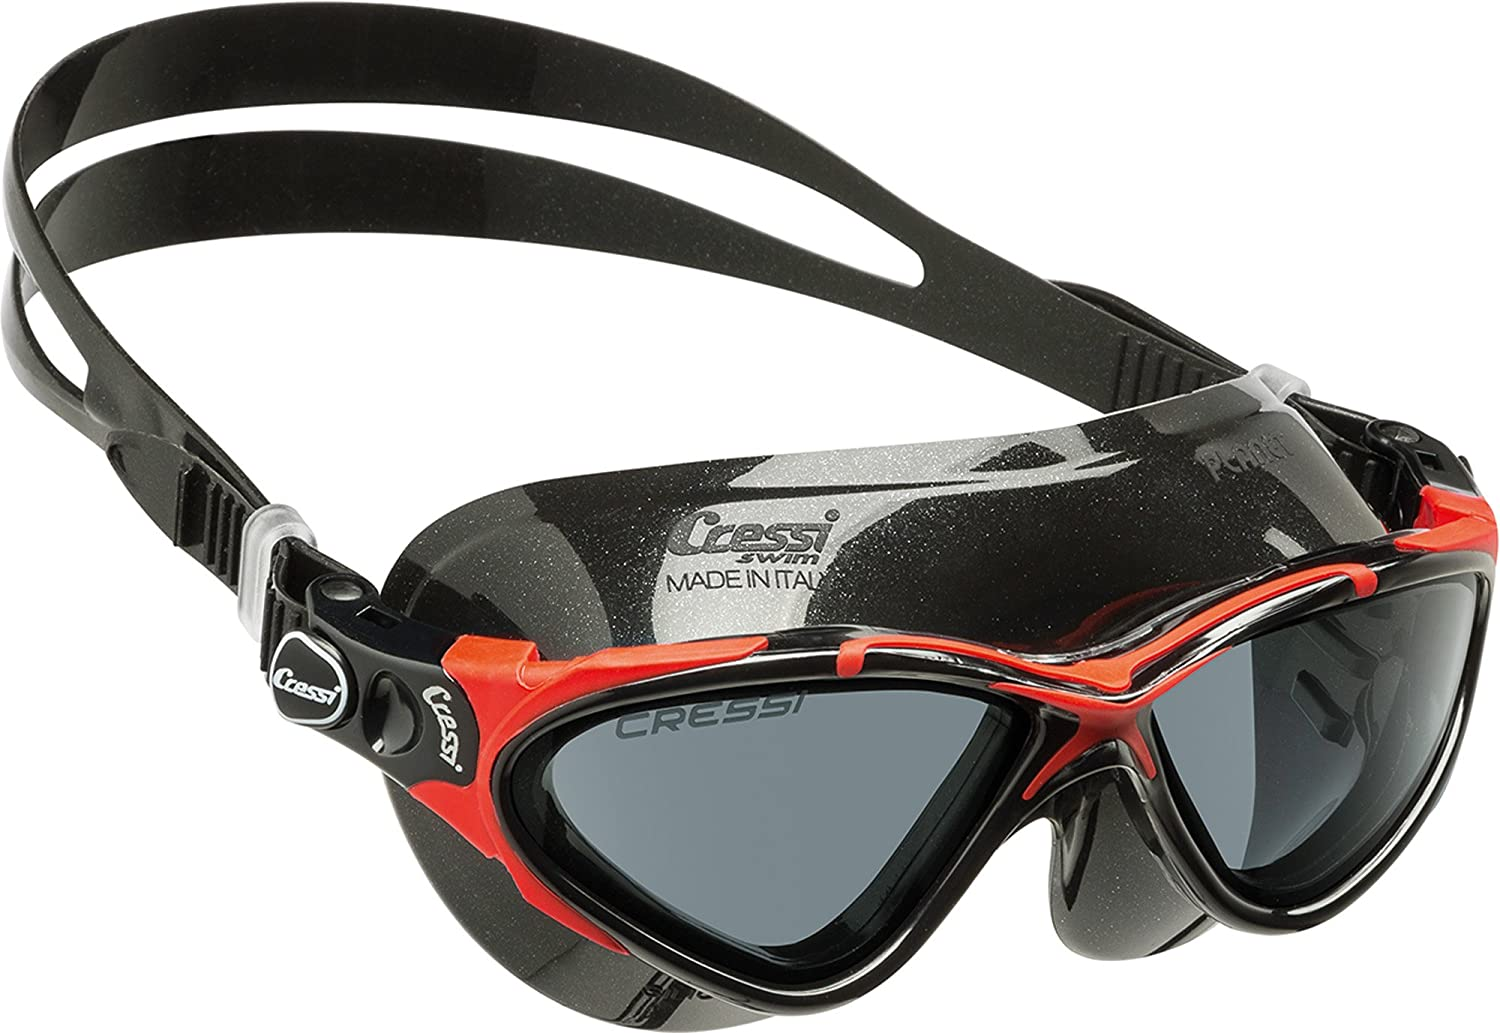 Cressi Adult Swim 67% OFF Dedication of fixed price Goggles with Long Technology Anti-Fog Lasting